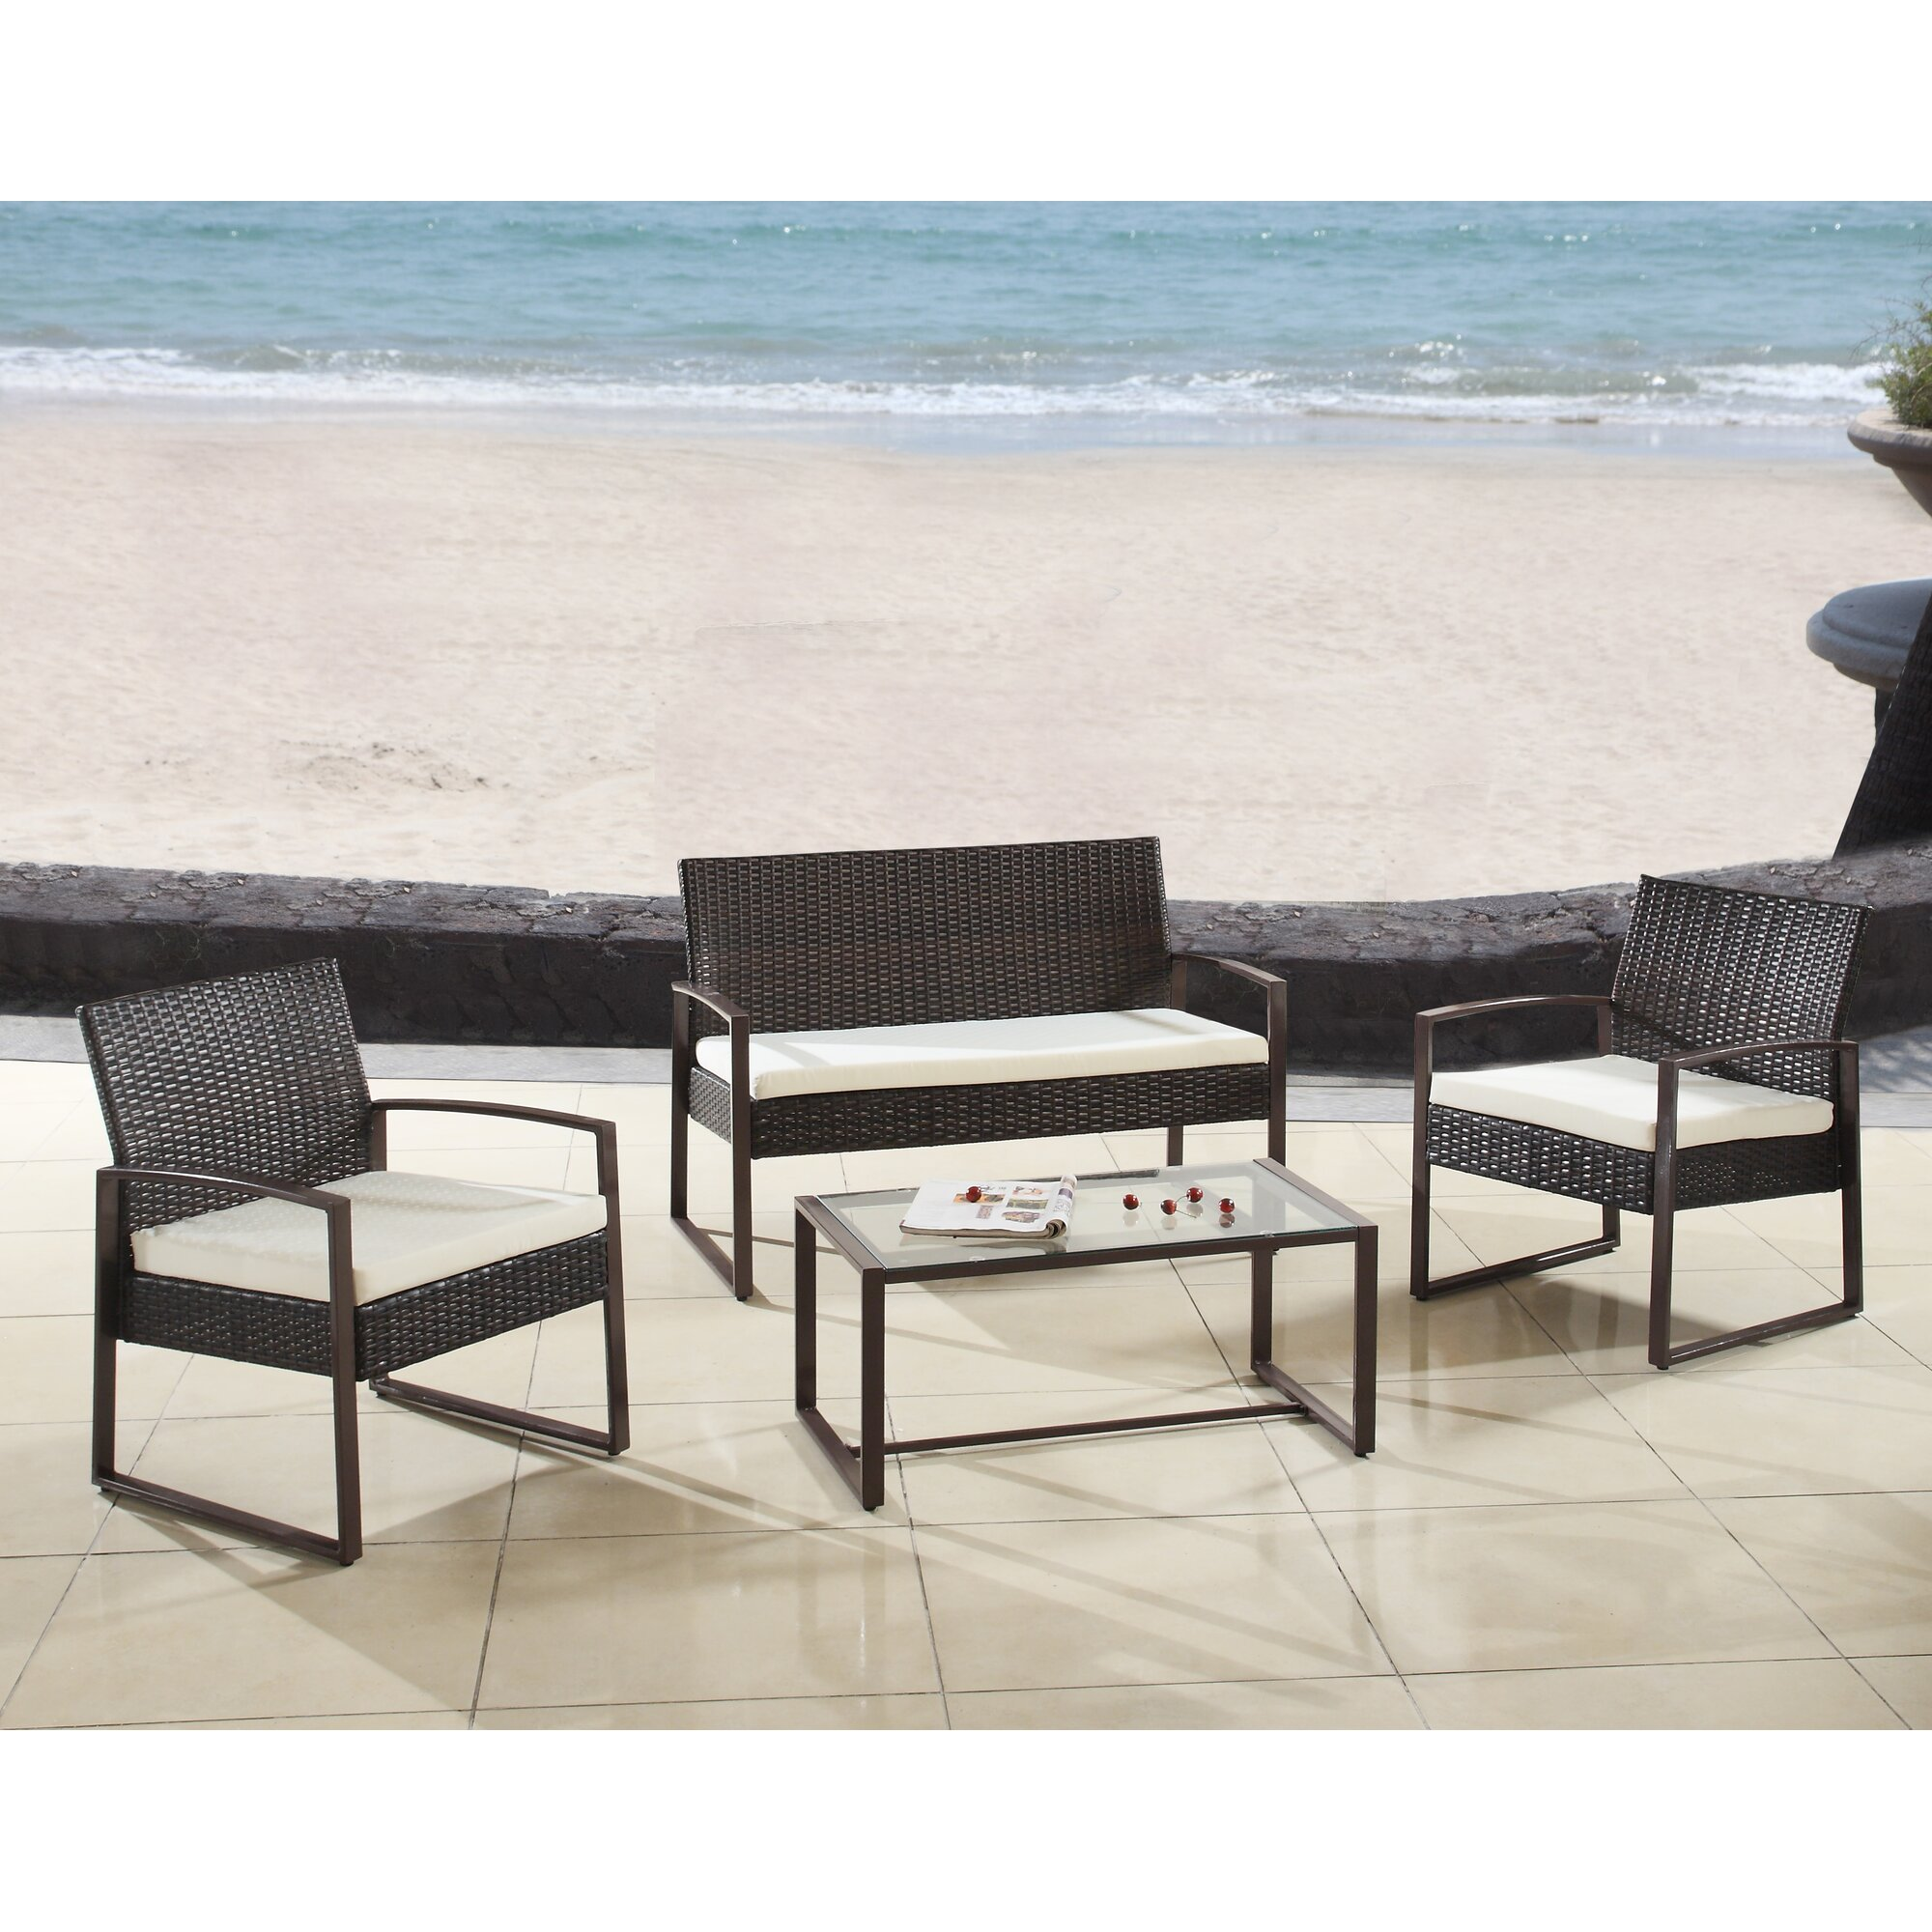 Superior Madison Home Usa Modern Outdoor Patio 4 Piece Seating Group With .